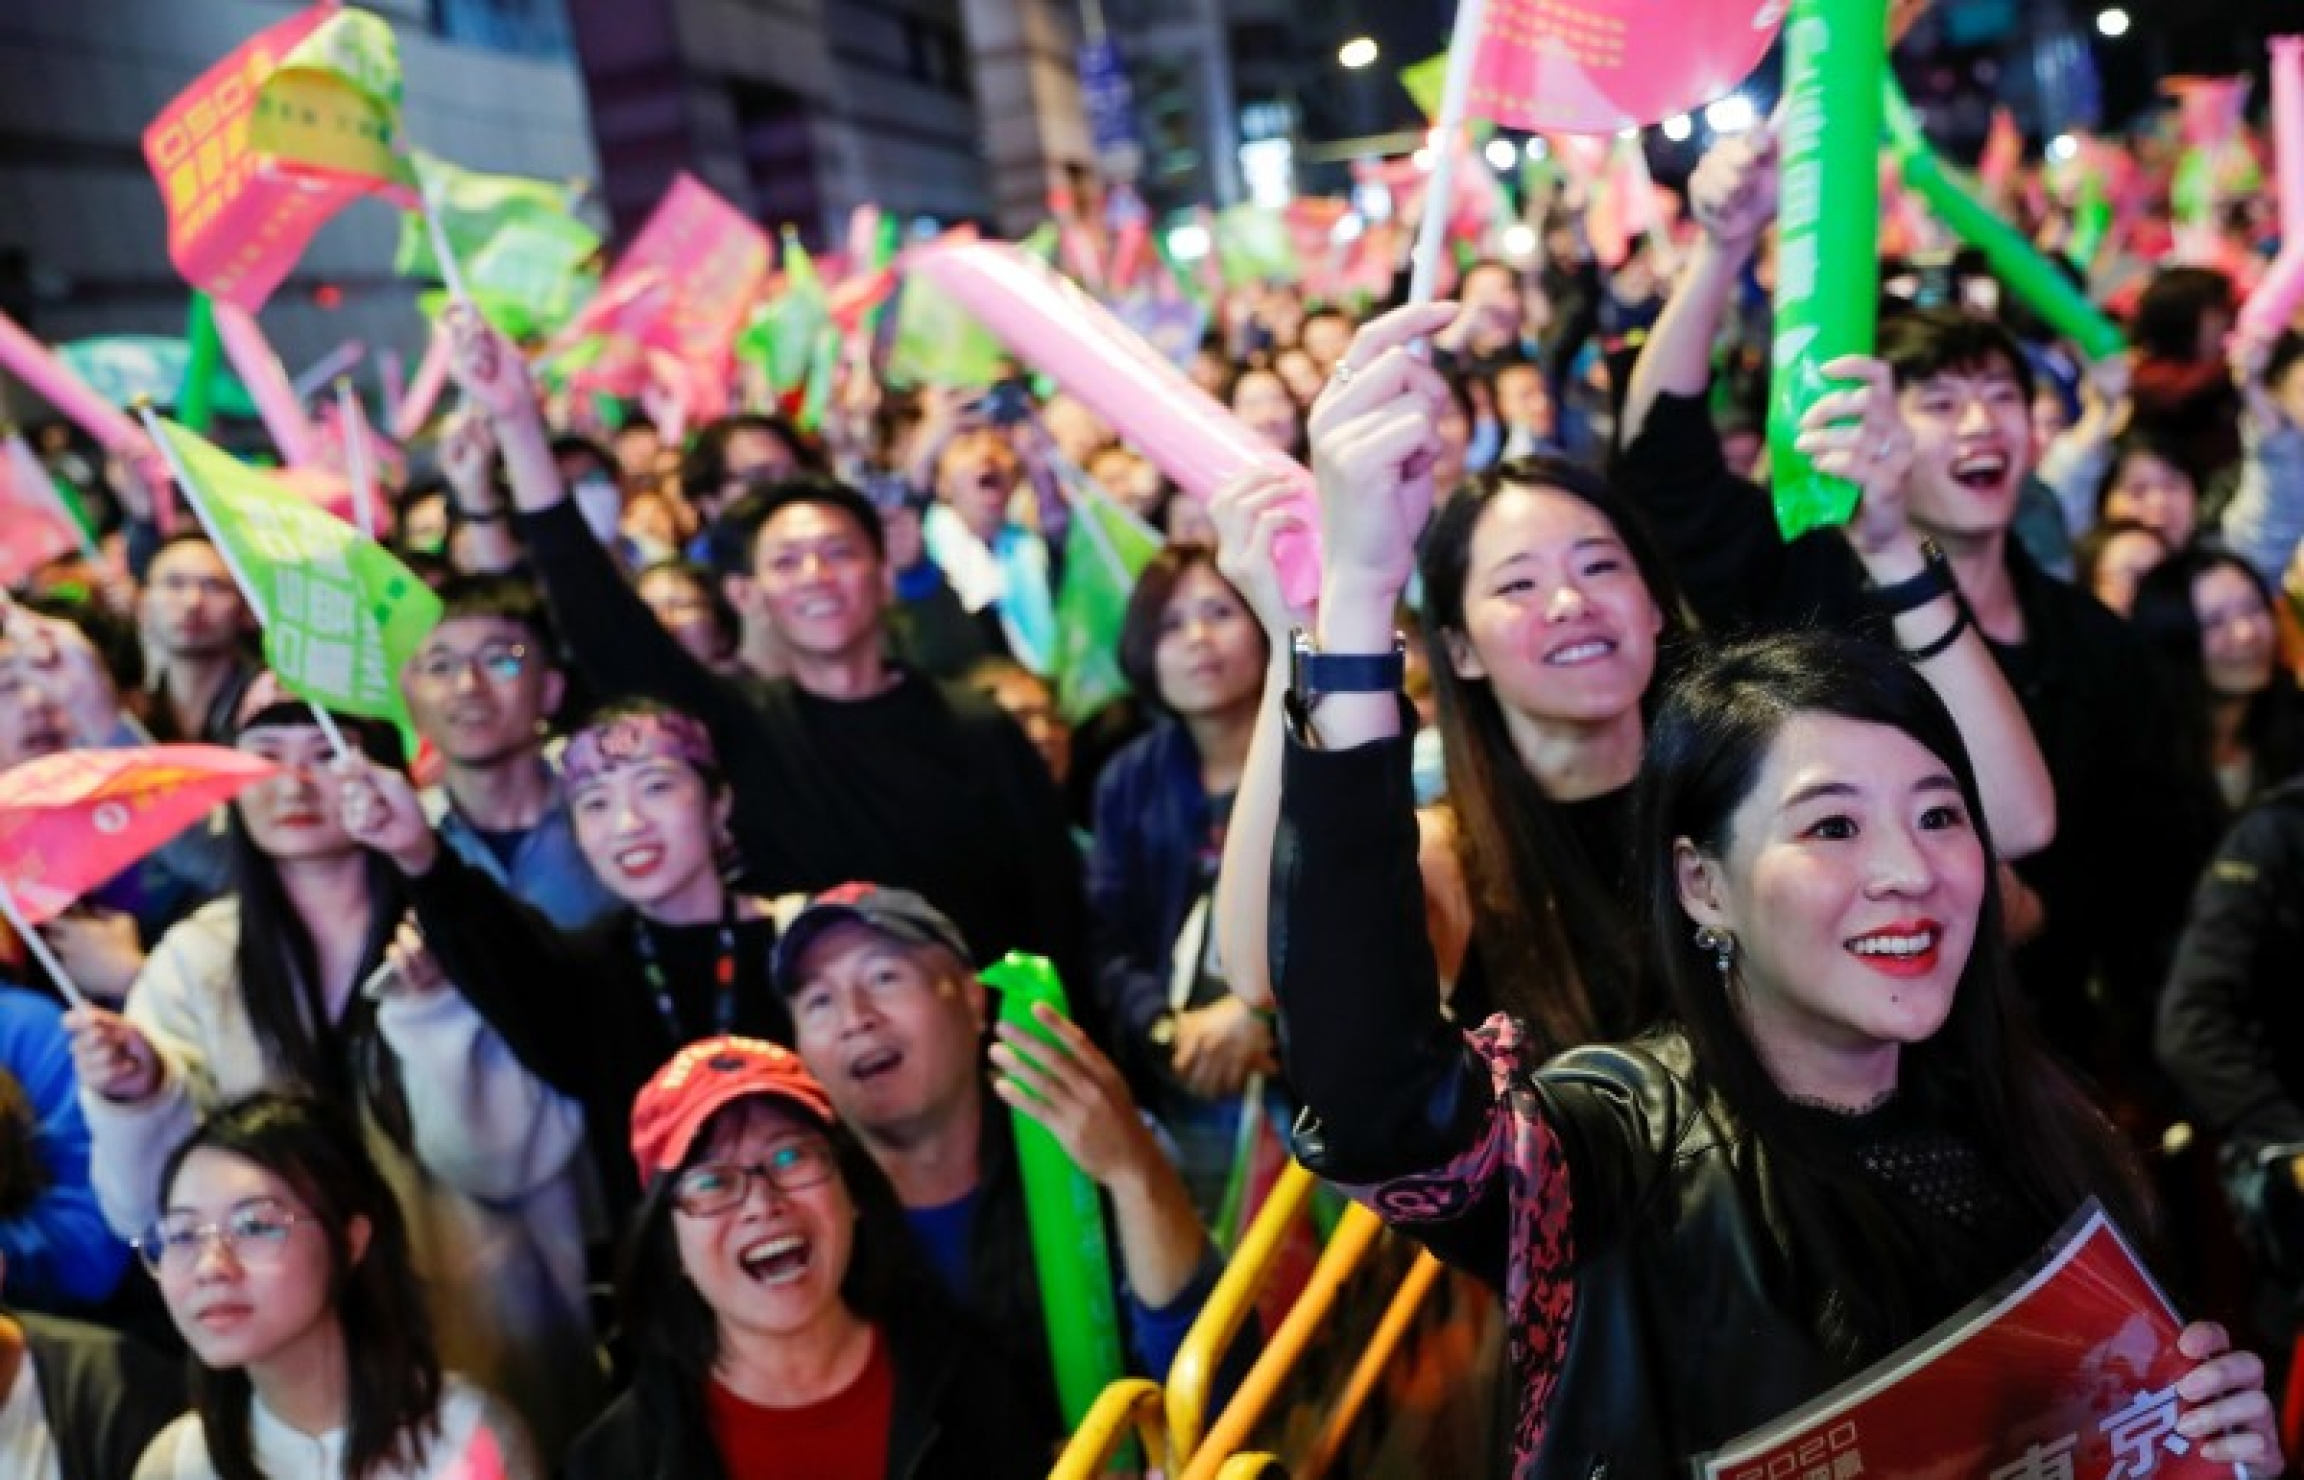 Supporters of Taiwan President Tsai Ing-wen react during a rally outside the Democratic Progressive Party (DPP) headquarters in Taipei, Taiwan, on January 11, 2020.